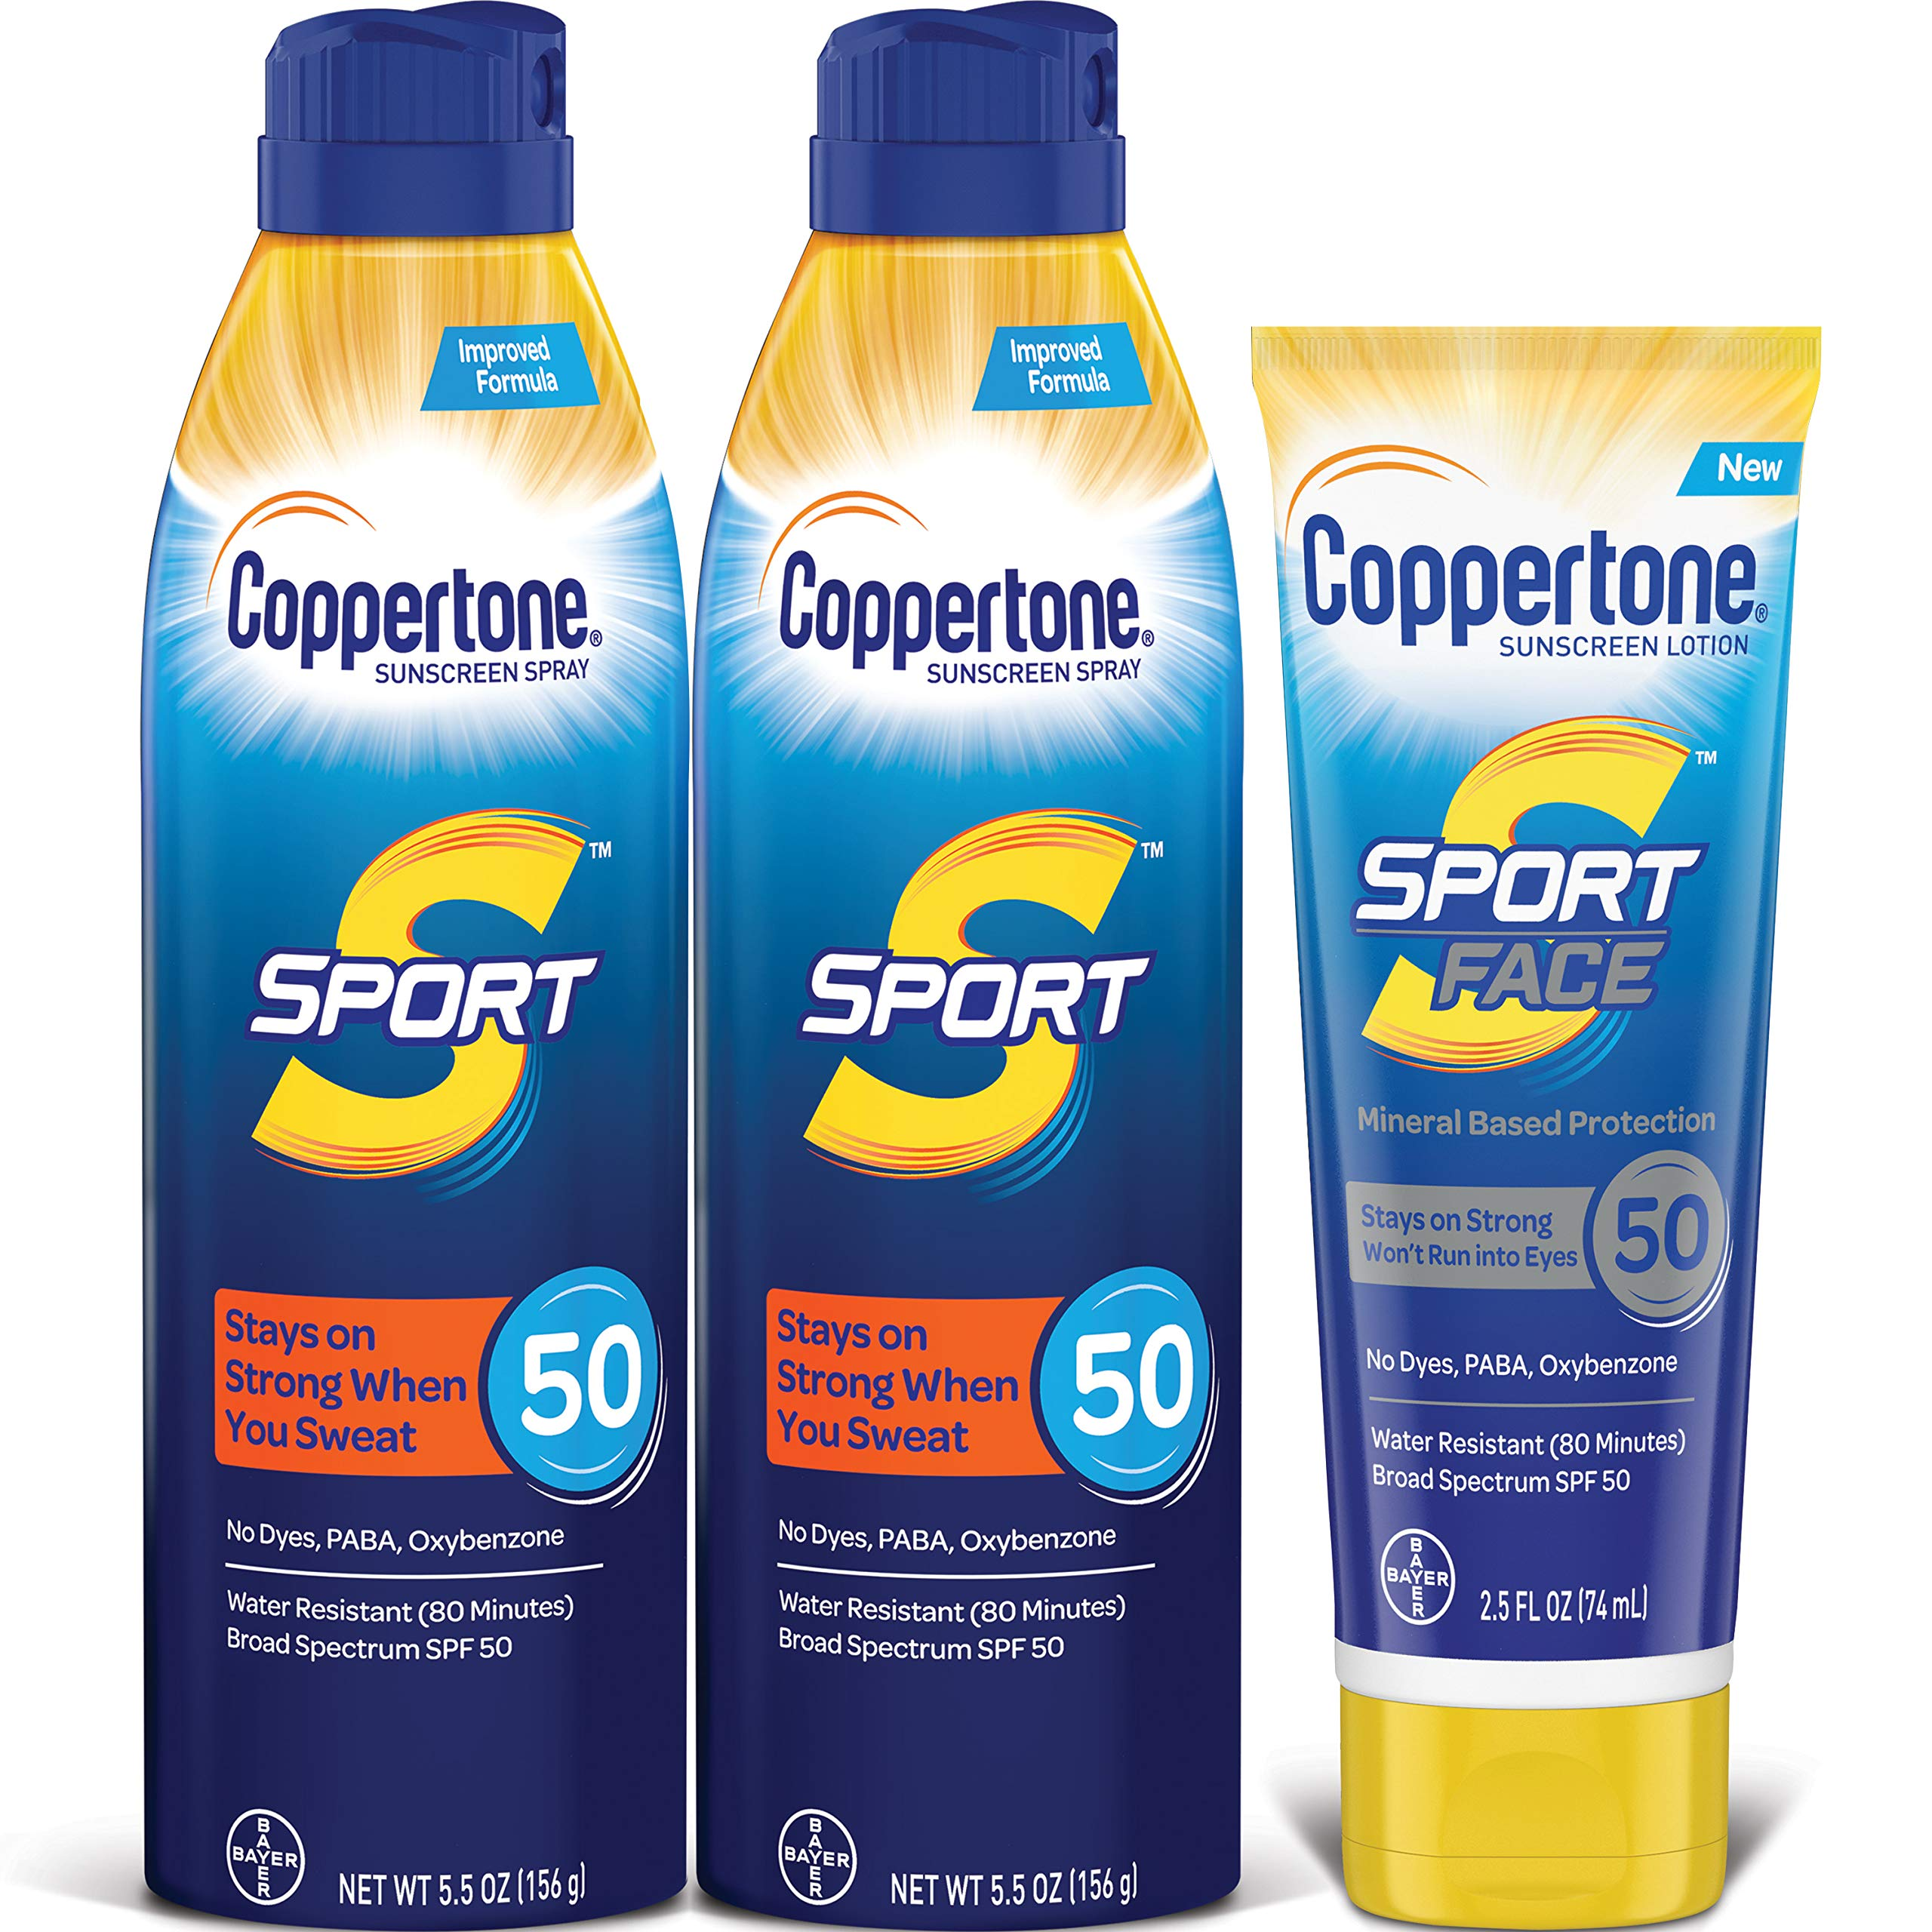 Coppertone SPORT SPF 50 Sunscreen Spray + SPORT Face SPF 50 Mineral Based Sunscreen Lotion Multipack (Two 5.5 Ounce Sprays + One 2.5 FL Ounce Lotion) by Coppertone